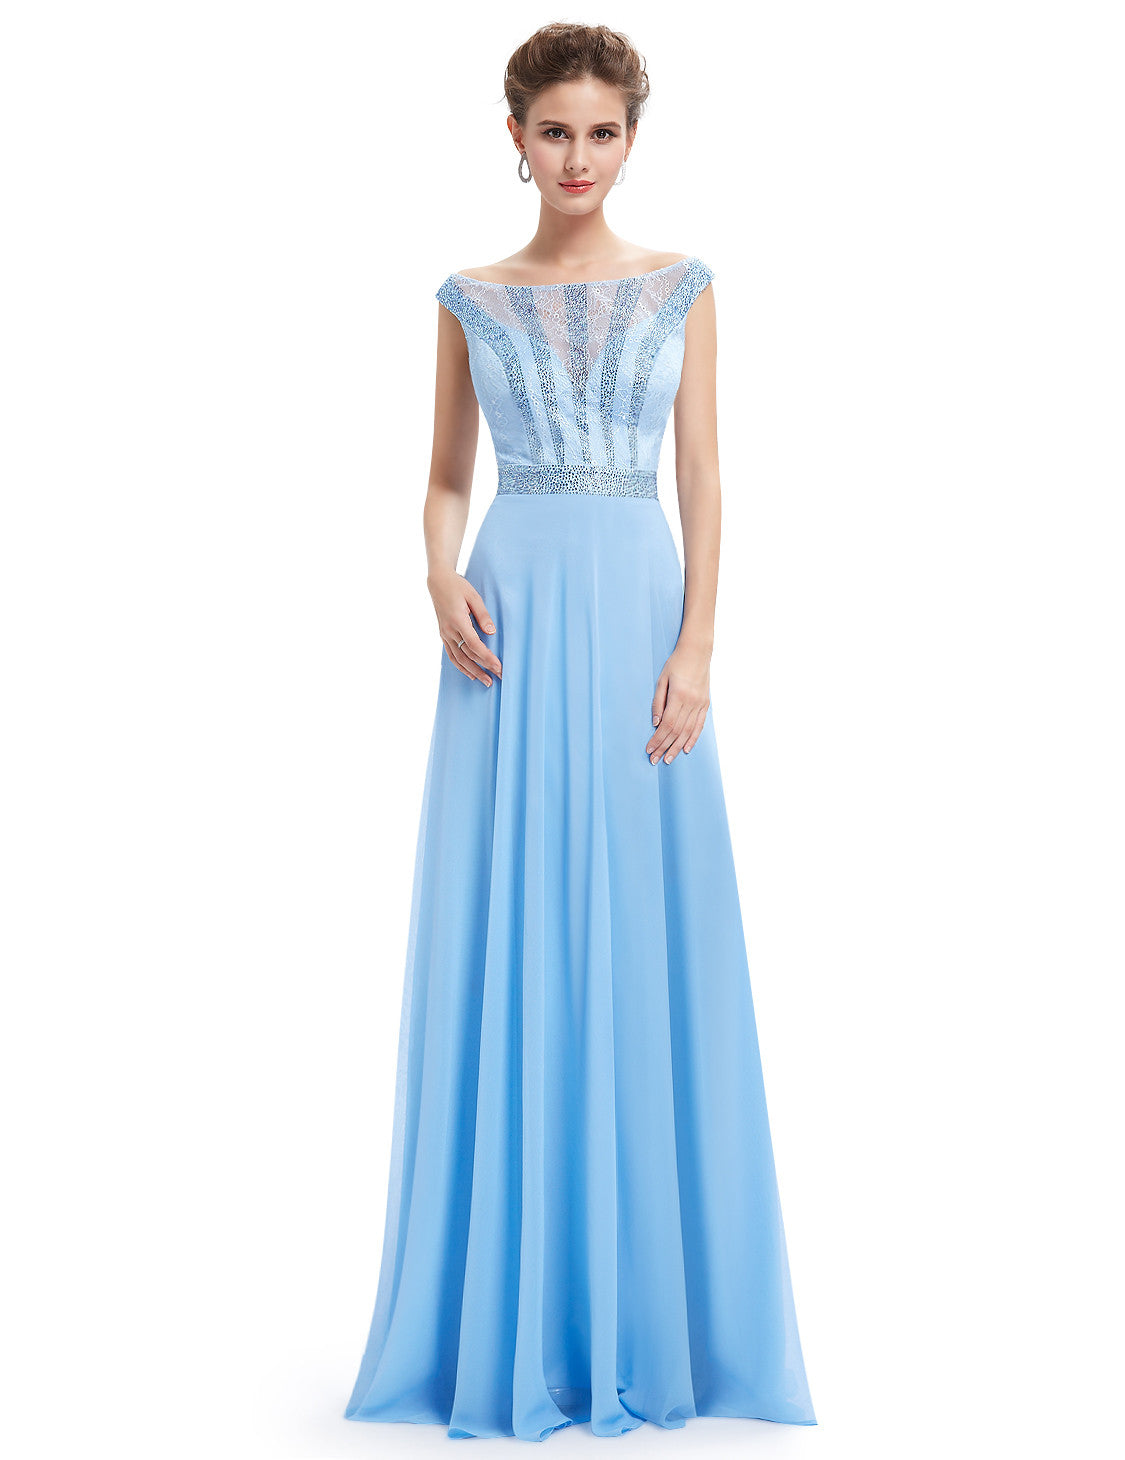 Obeige Elegant Blue Long Evening Dress